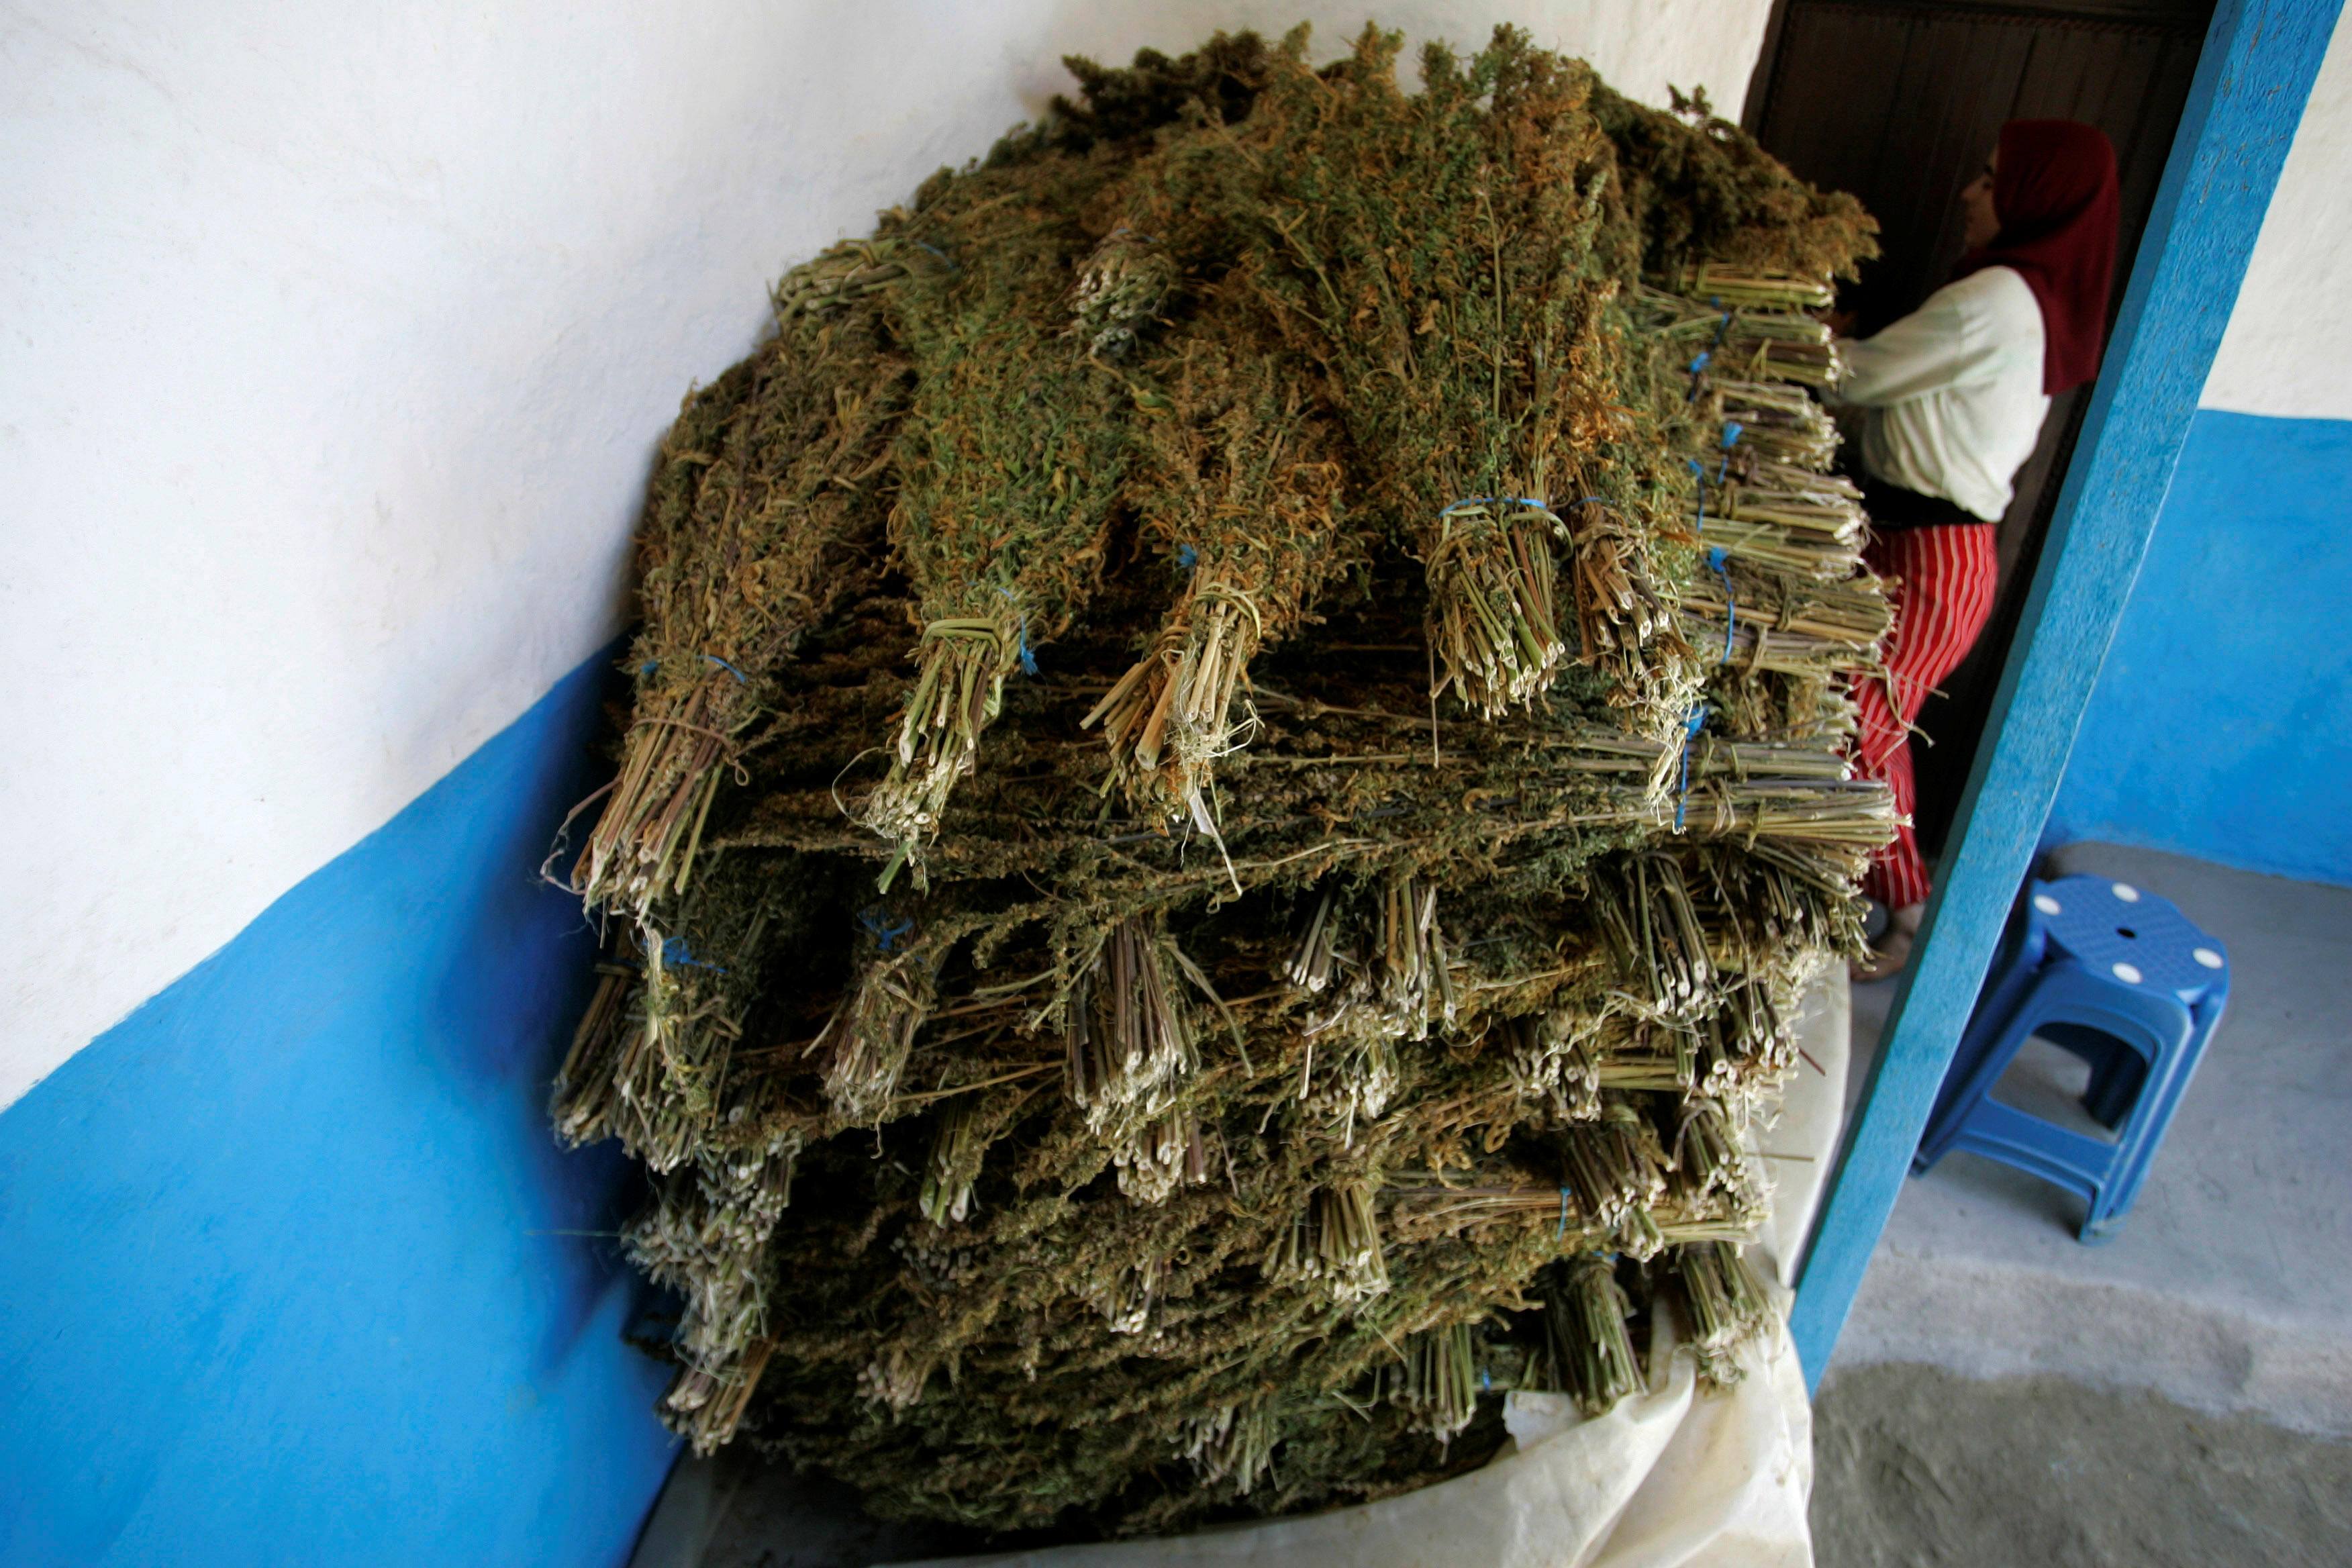 Bundles of marijuana plant are dried at a farmer's house in the Rif region, near Chefchaouen August 8, 2009/File Photo